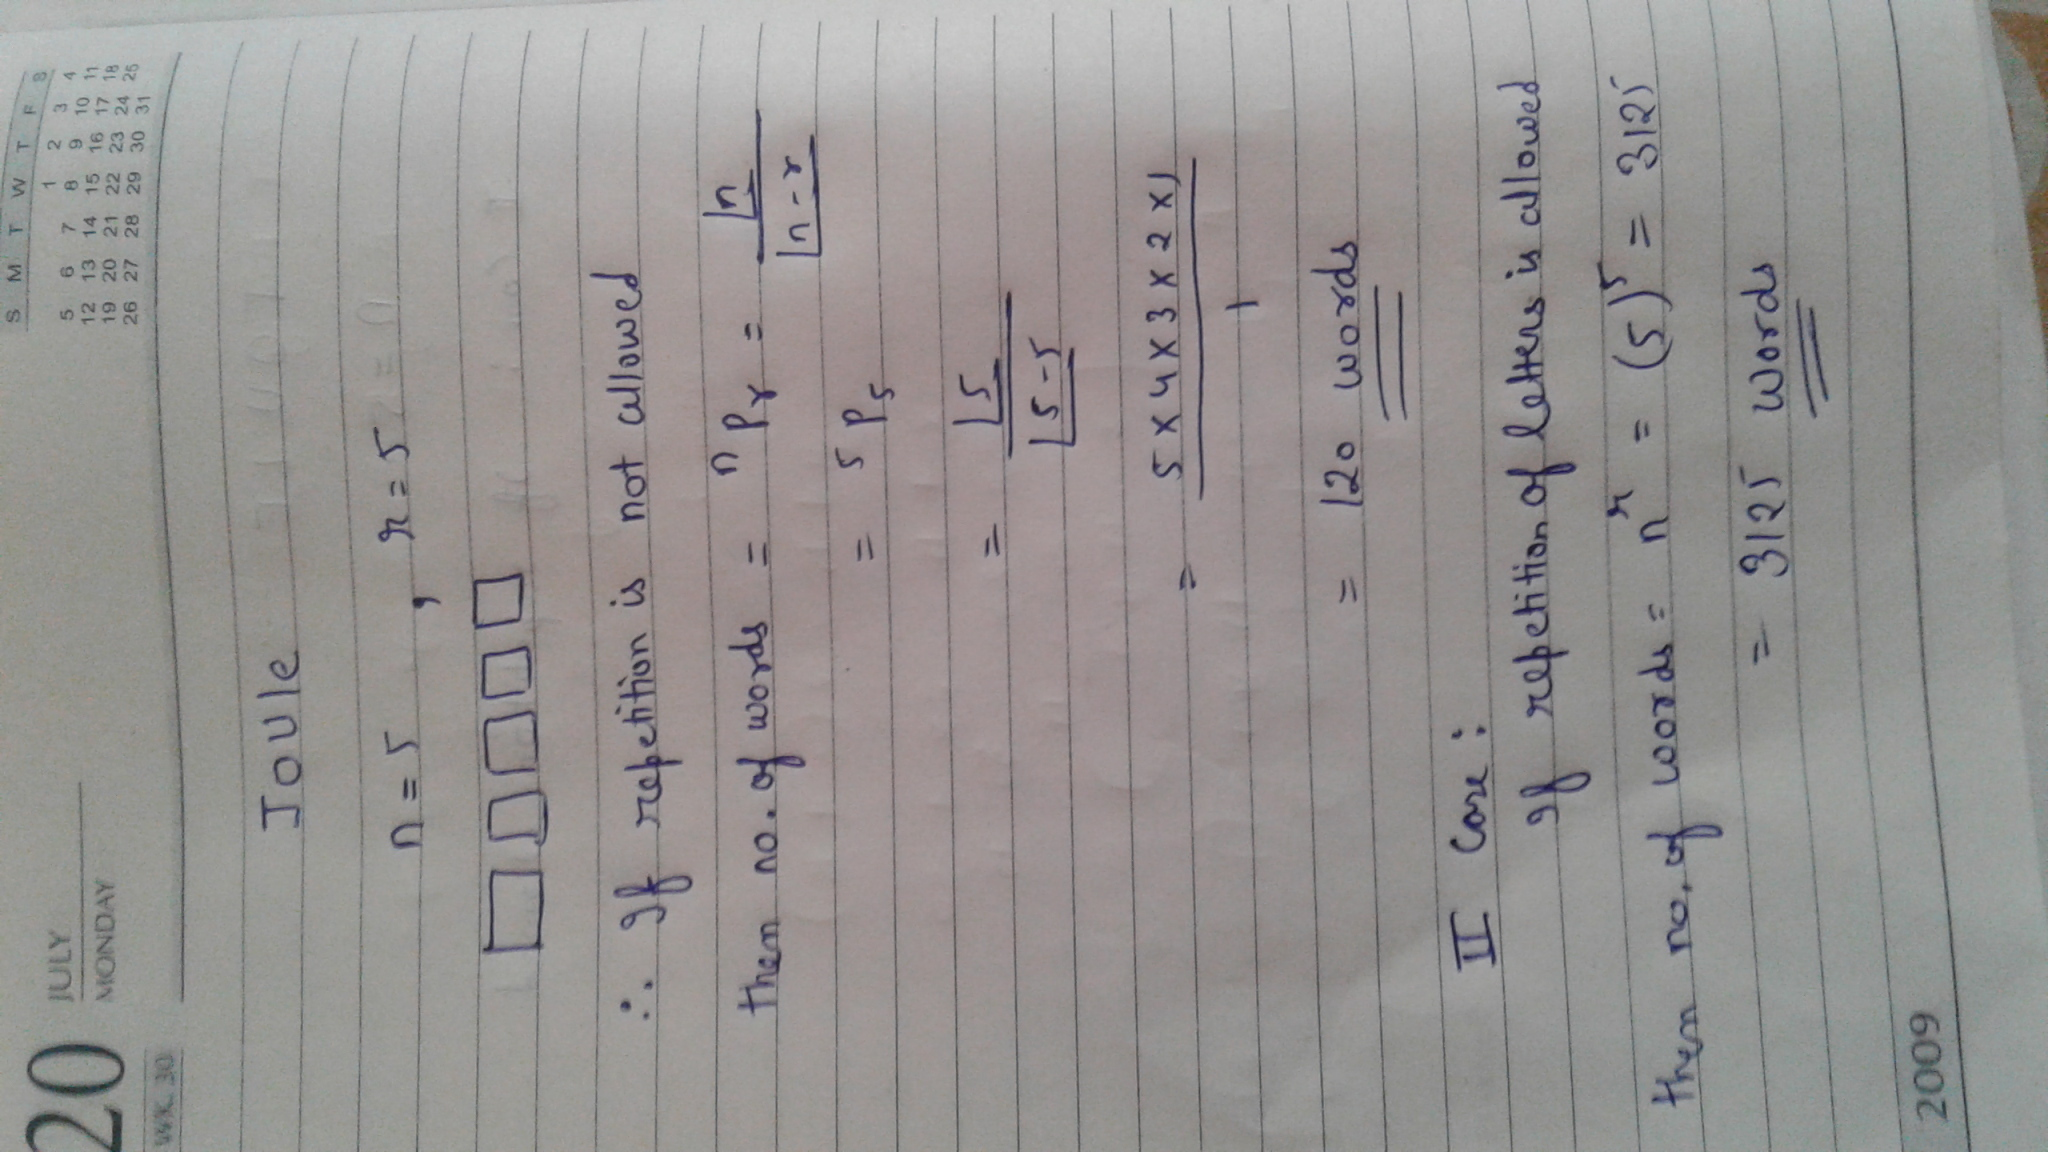 How Many Words Of 2 Vowels And 3 Consonants May Be Formed From The